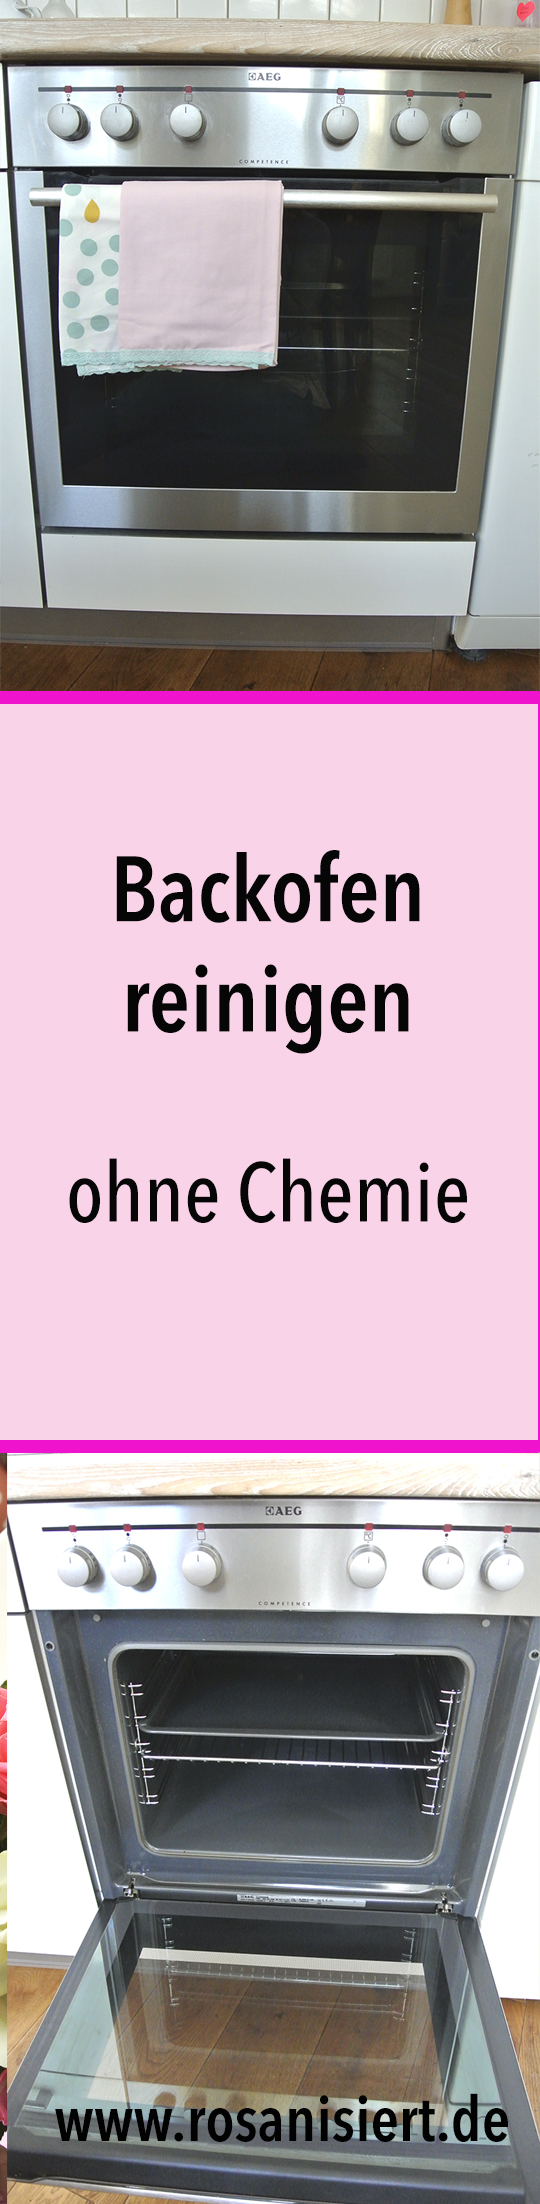 backofen reinigen ohne chemie so wird dein ofen strahlend sauber rosanisiert. Black Bedroom Furniture Sets. Home Design Ideas